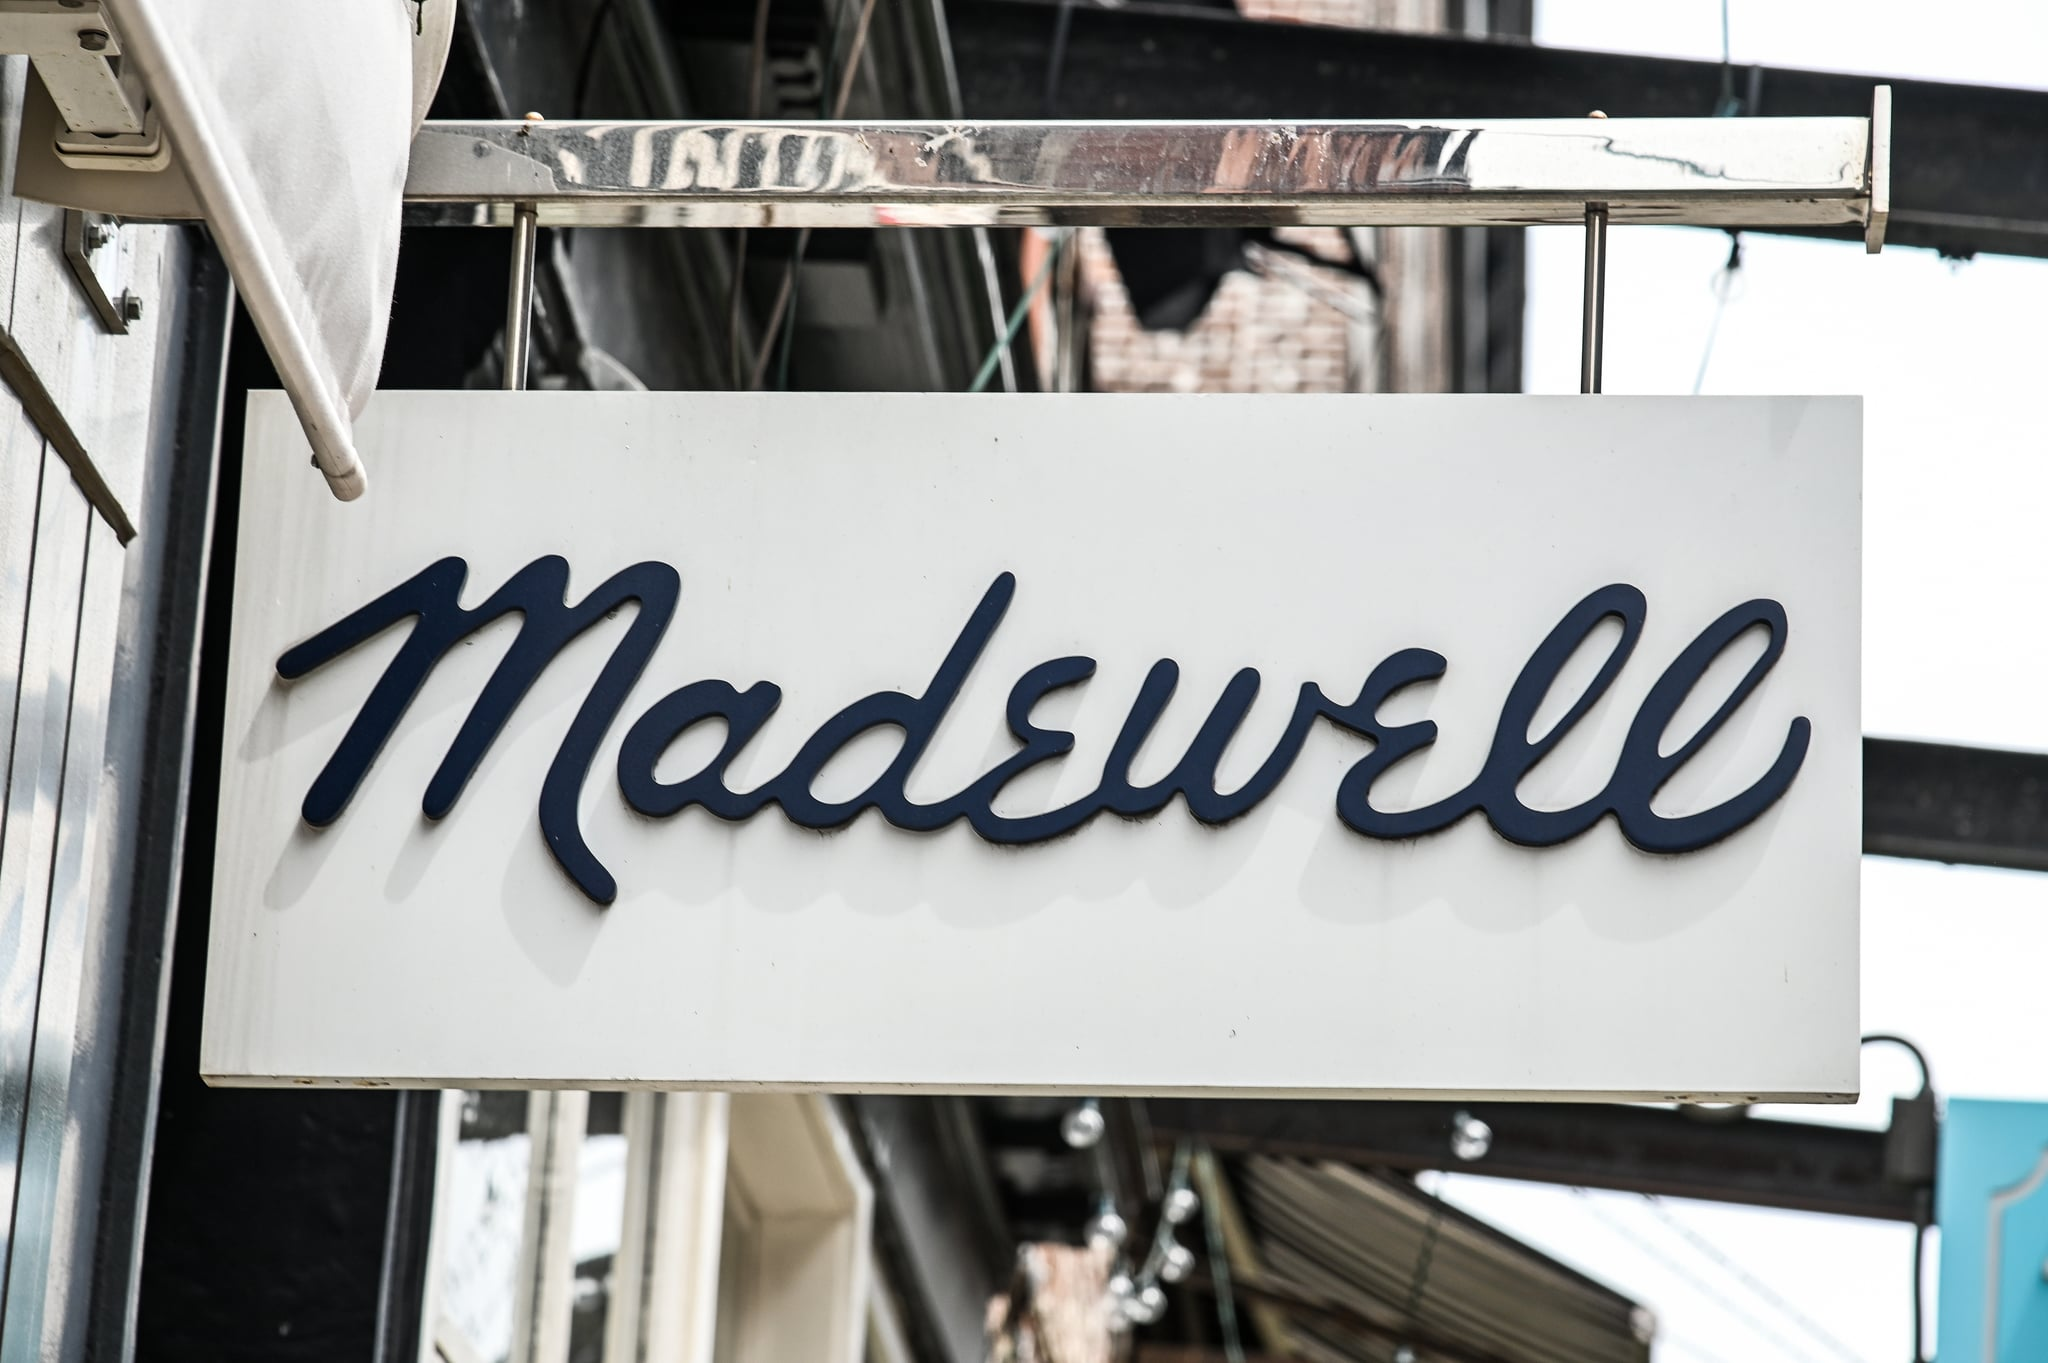 NEW YORK, NEW YORK - MAY 19: Madewell is closed during the COVID-19 pandemic on May 19, 2020 in New York City. COVID-19 has spread to most countries around the world, claiming over 323,000 lives with infections of over 4.9 million people. (Photo by Ben Gabbe/Getty Images)